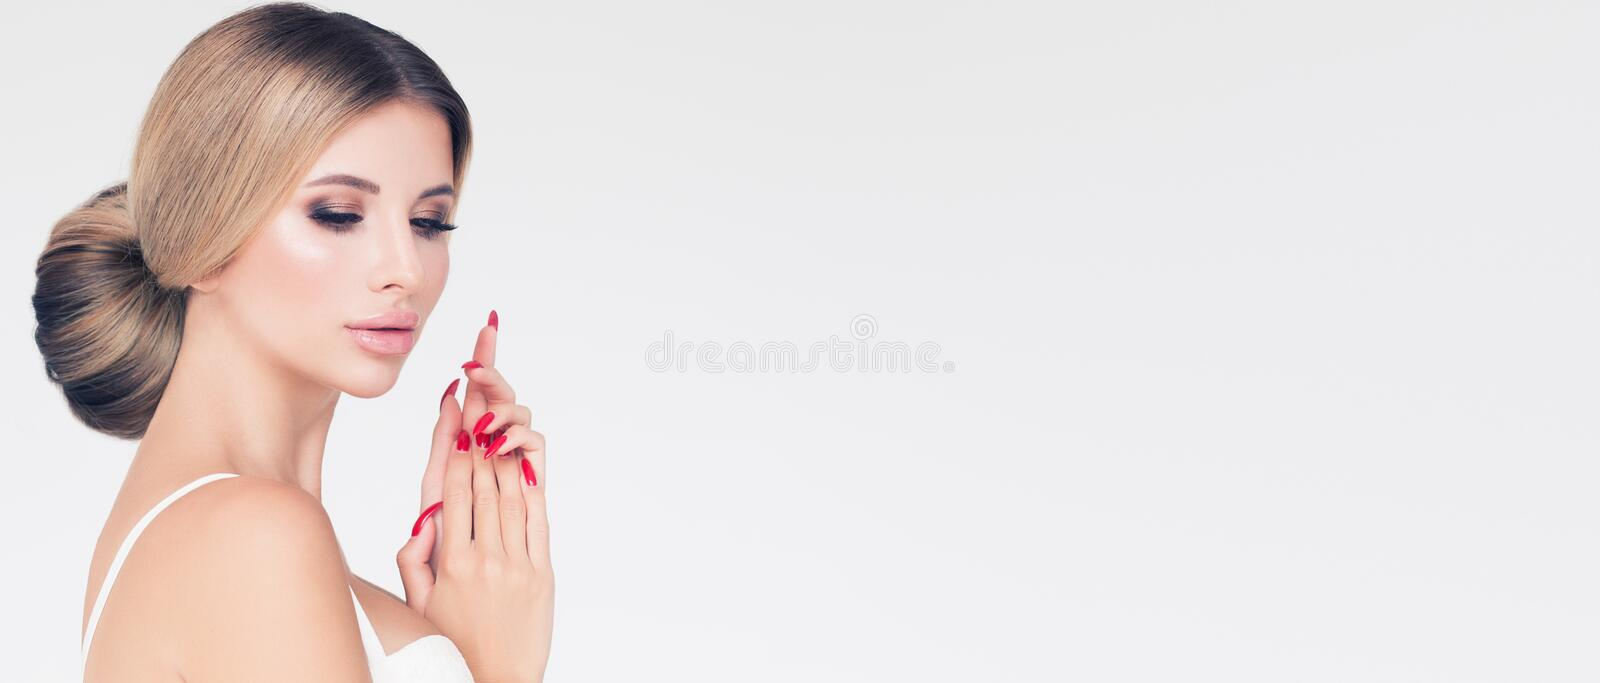 Pretty young model woman with perfect blonde hair, makeup and manicure on white banner background.  royalty free stock photos